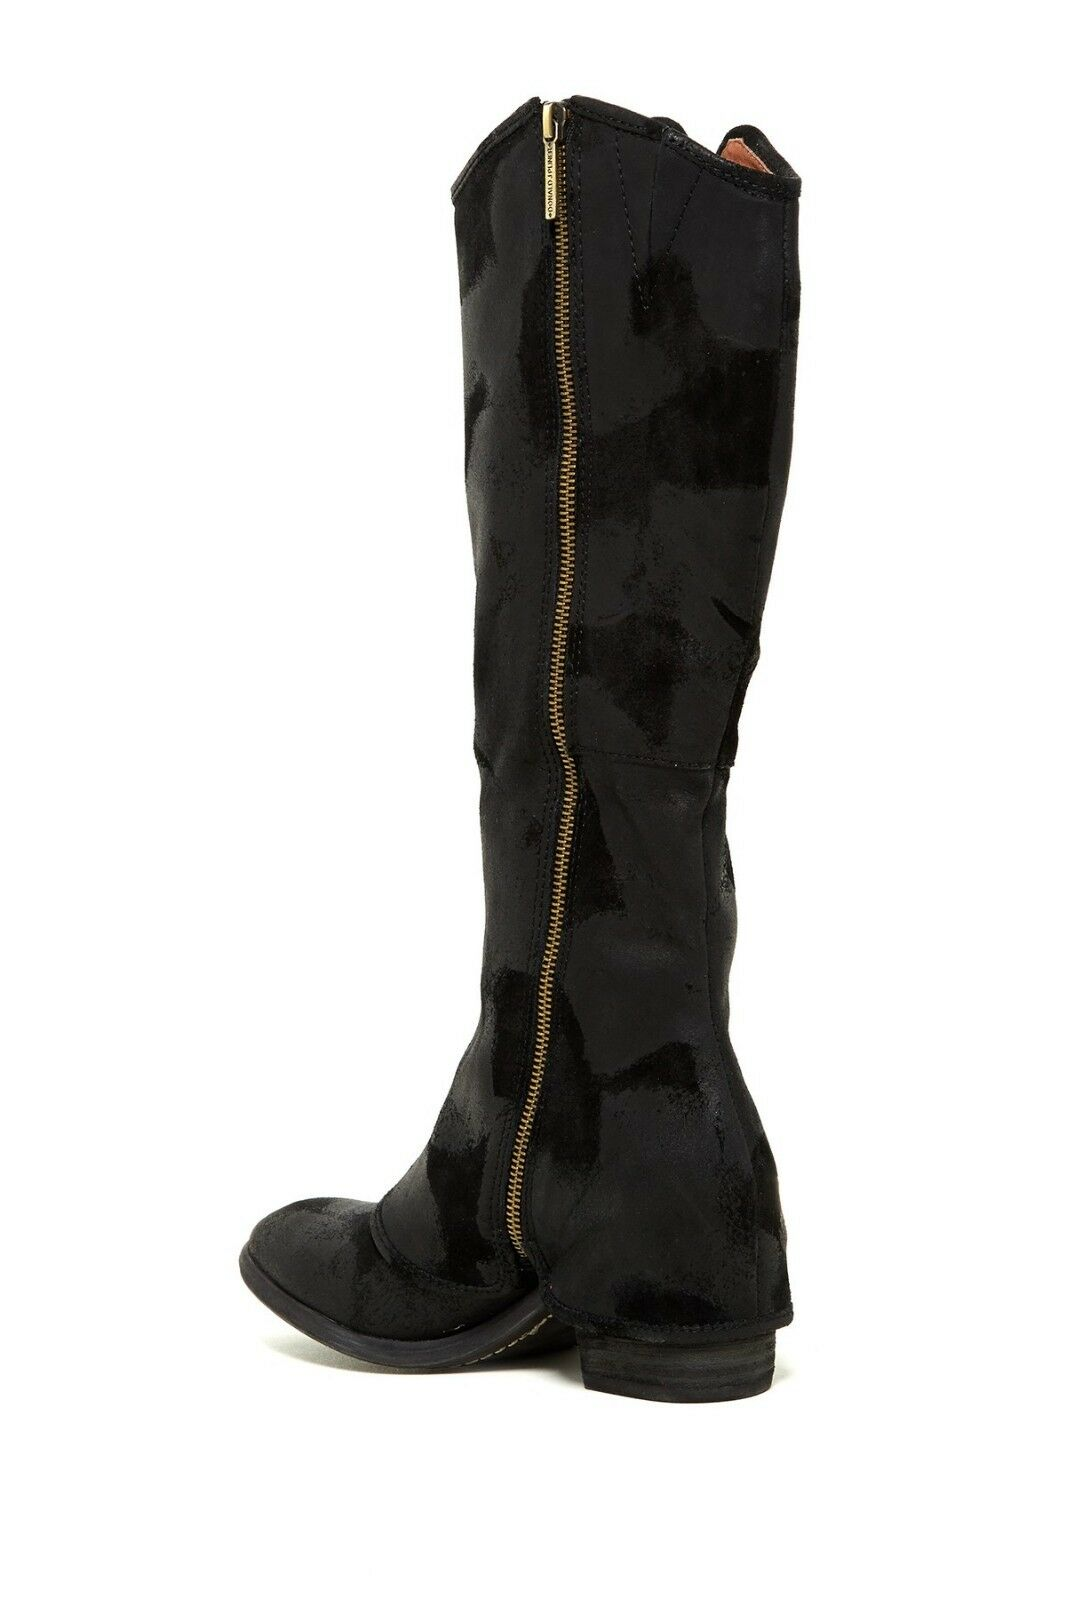 NEW NEW NEW Donald J Pliner Devi Antique Black Suede Tall Boot, Women Size 5,  398 2aecbe